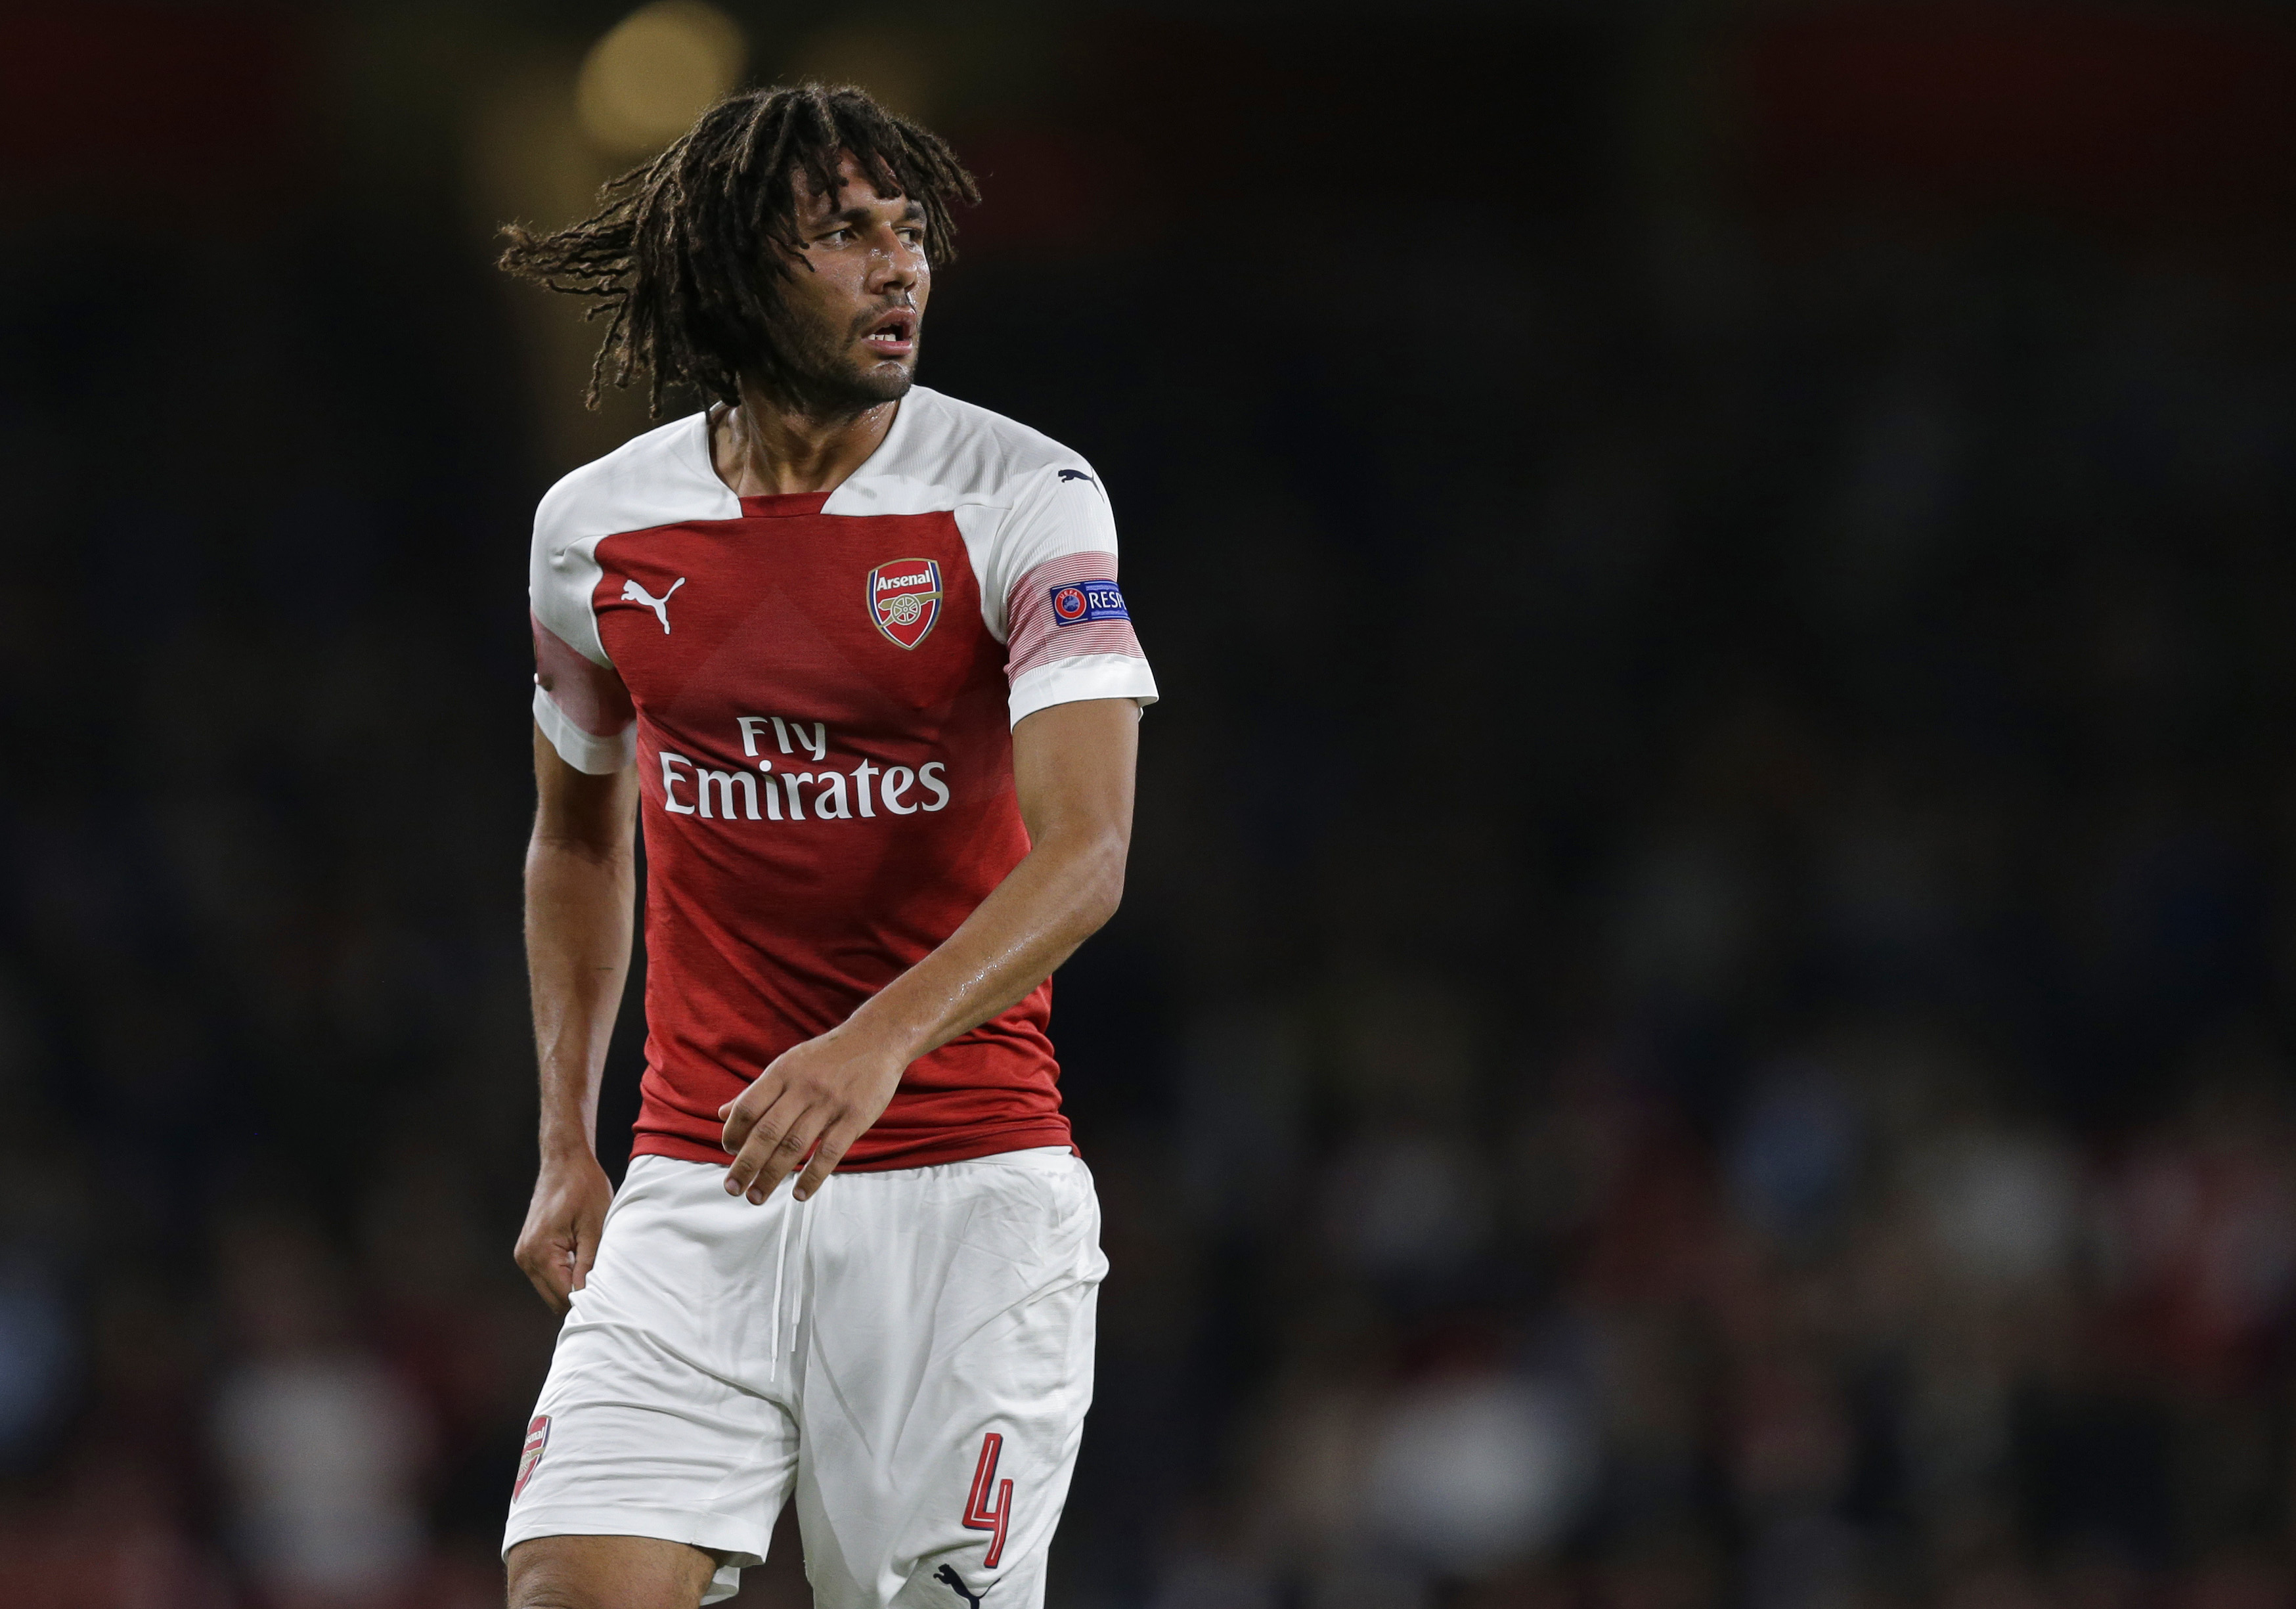 Elneny could leave Arsenal and join West Ham. (Photo by Henry Browne/Getty Images)